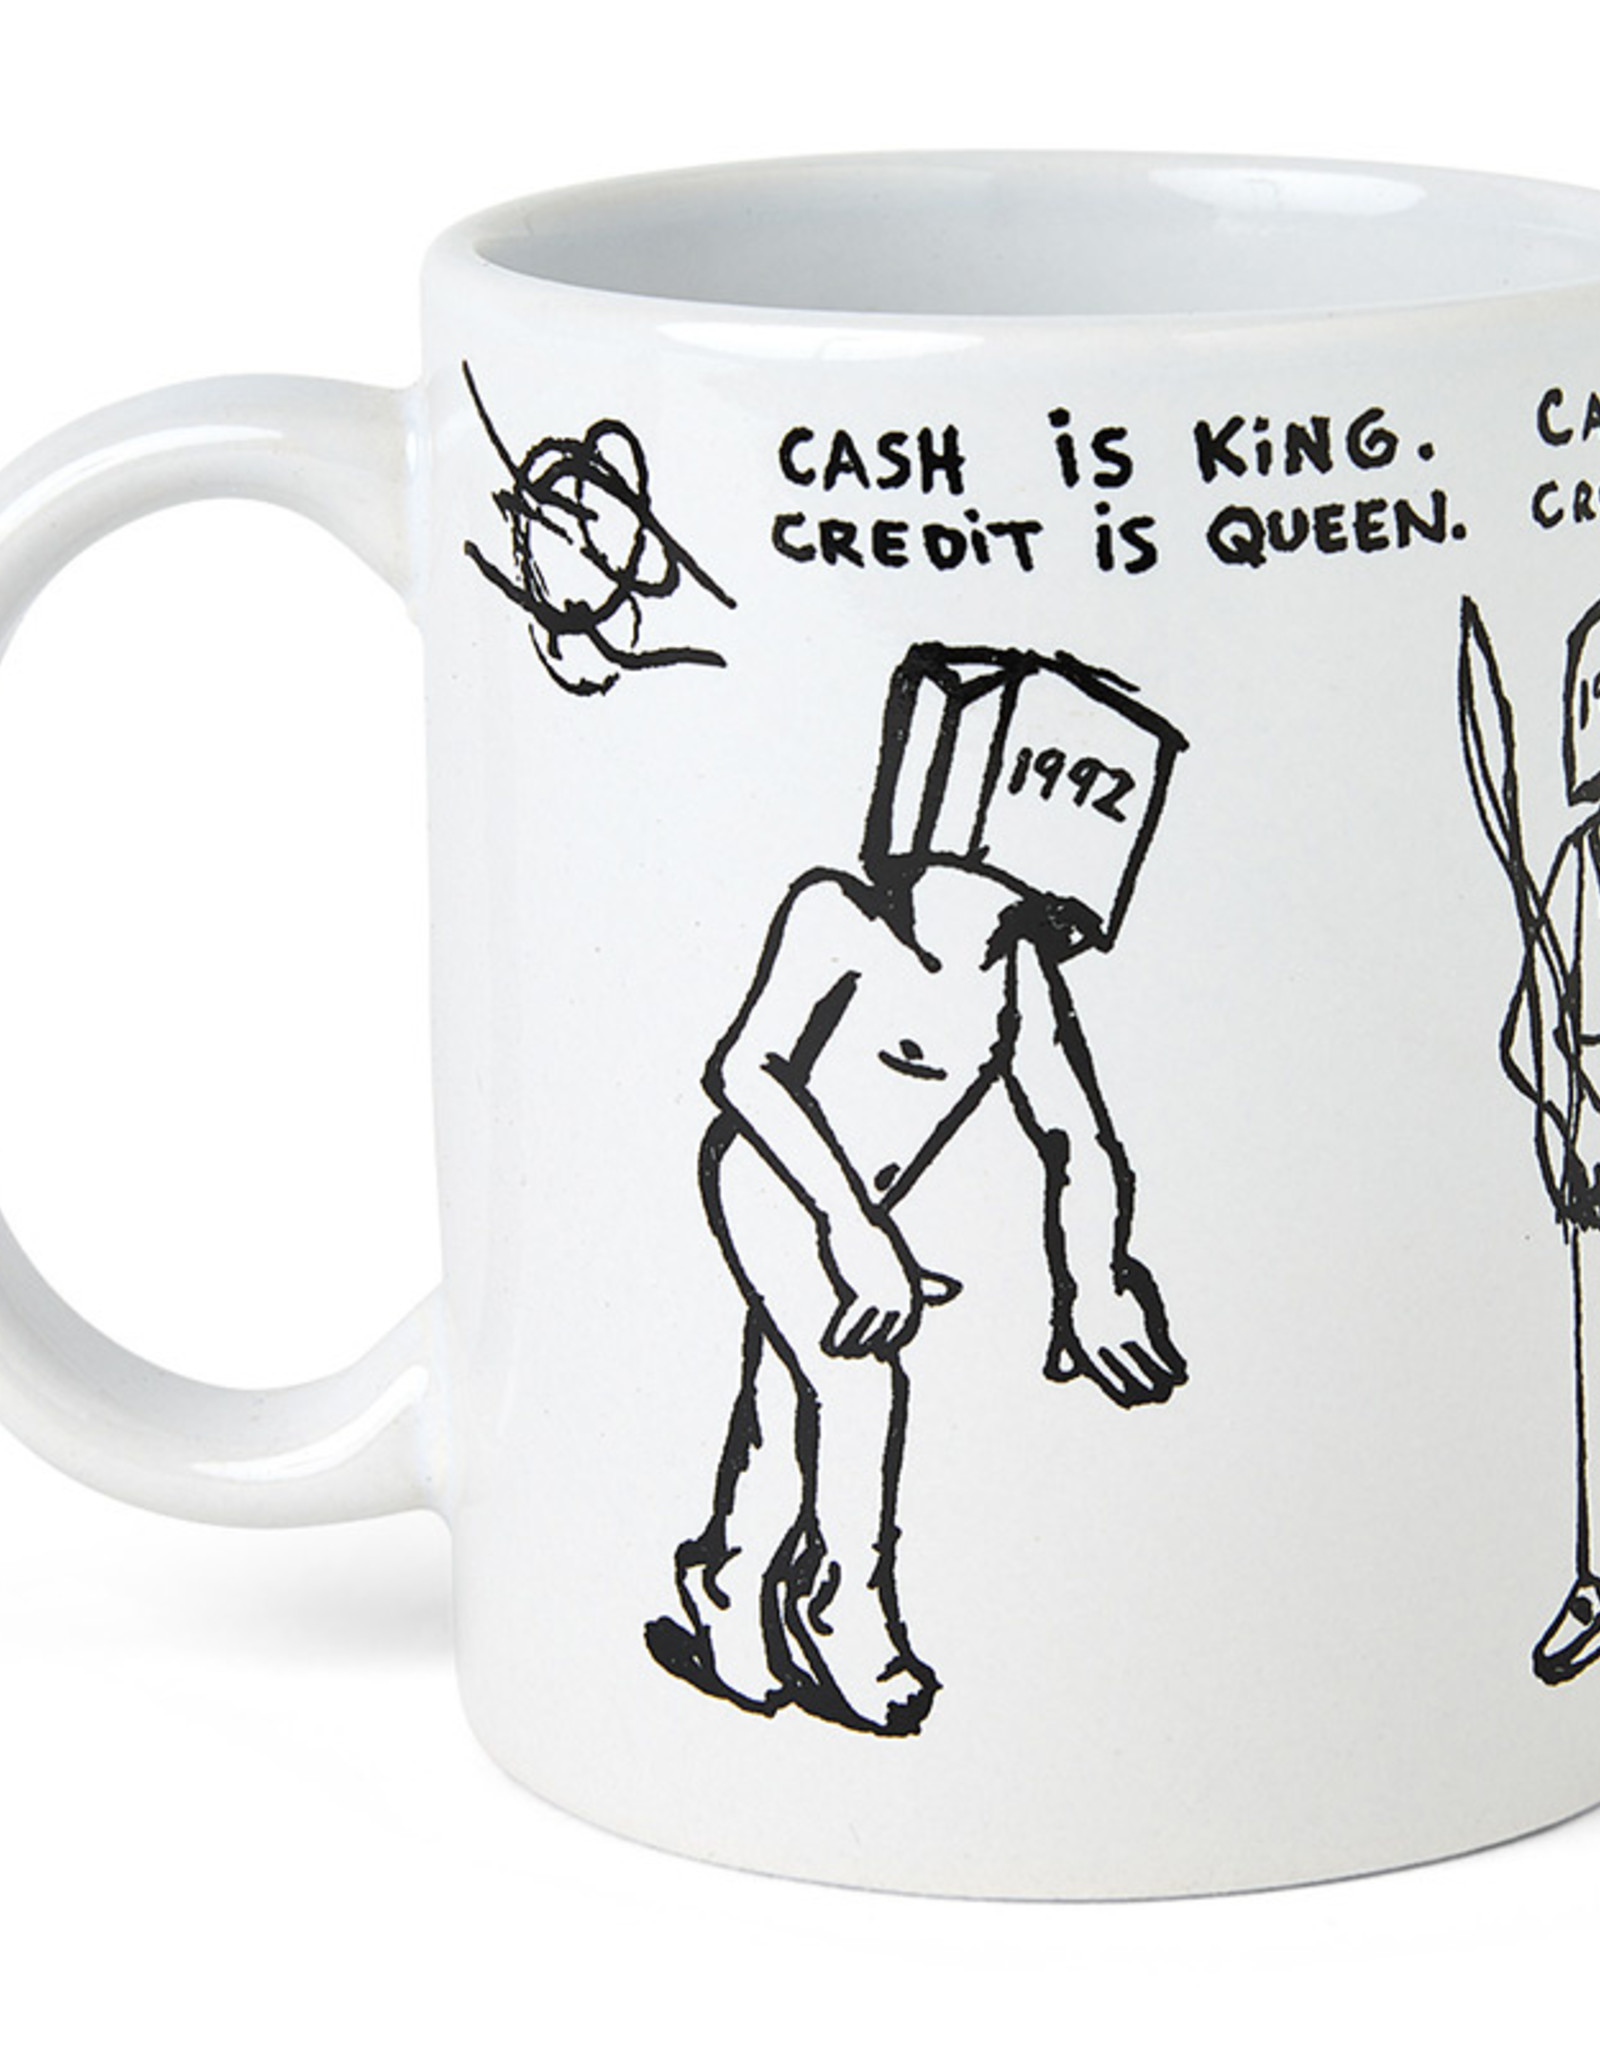 POLAR CASH IS QUEEN COFFEE MUG